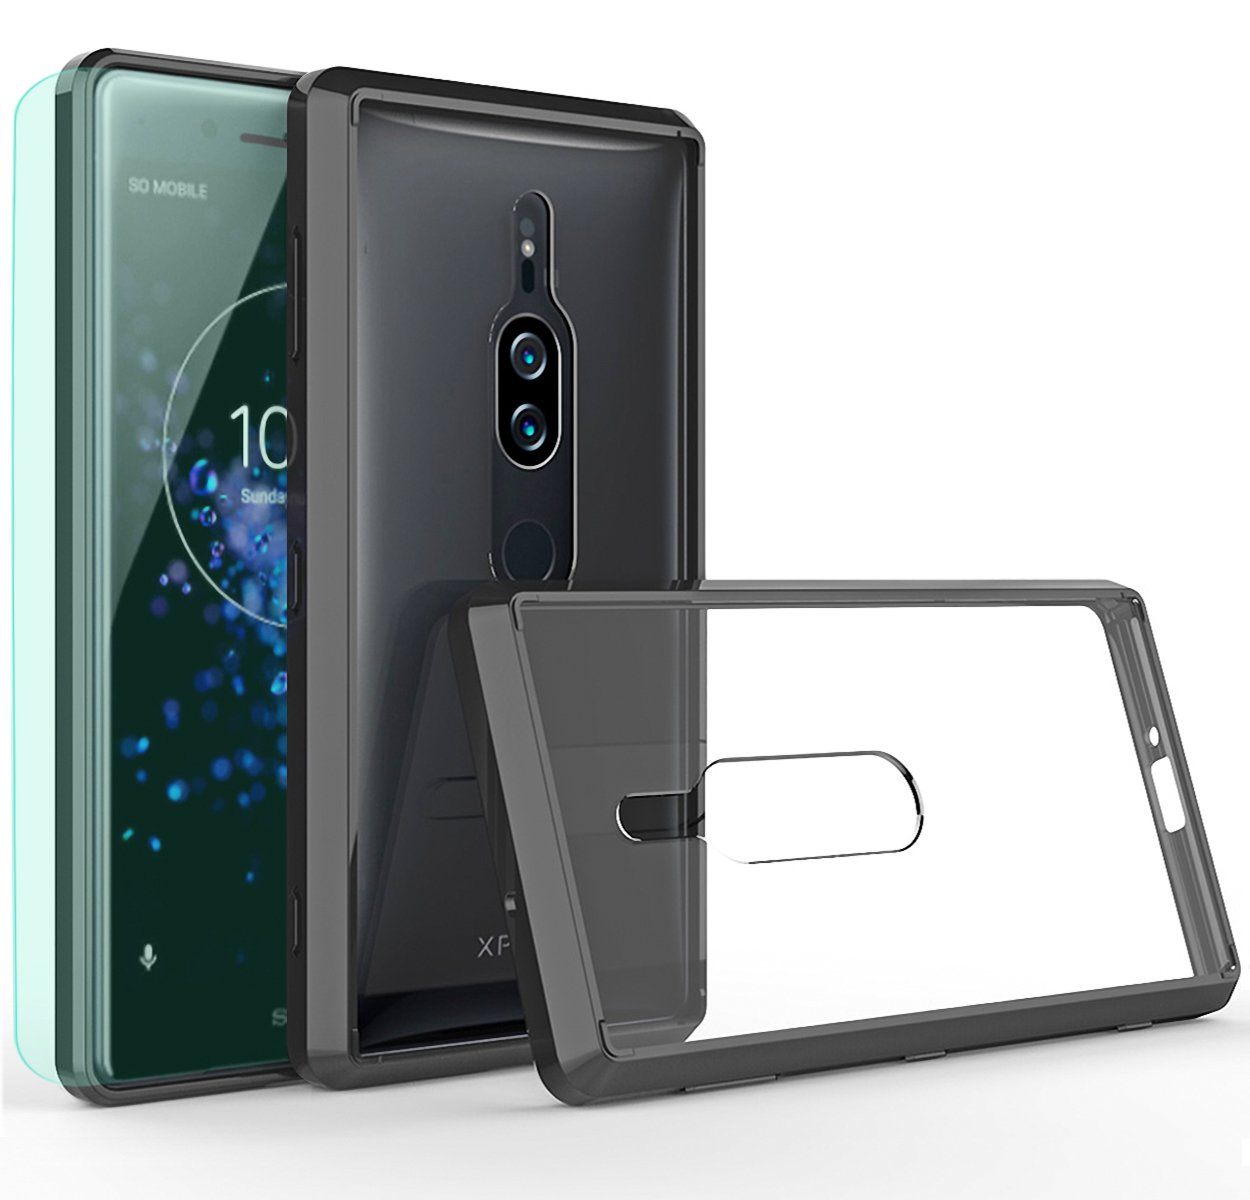 sports shoes 8f7ec 6af88 Sony Xperia XZ2 Premium Case with HD Screen Protector Thinkart Crystal  Clear TPU Bumper Ultra Slim Protective Case with Anti-Scratch for Sony  Xperia ...